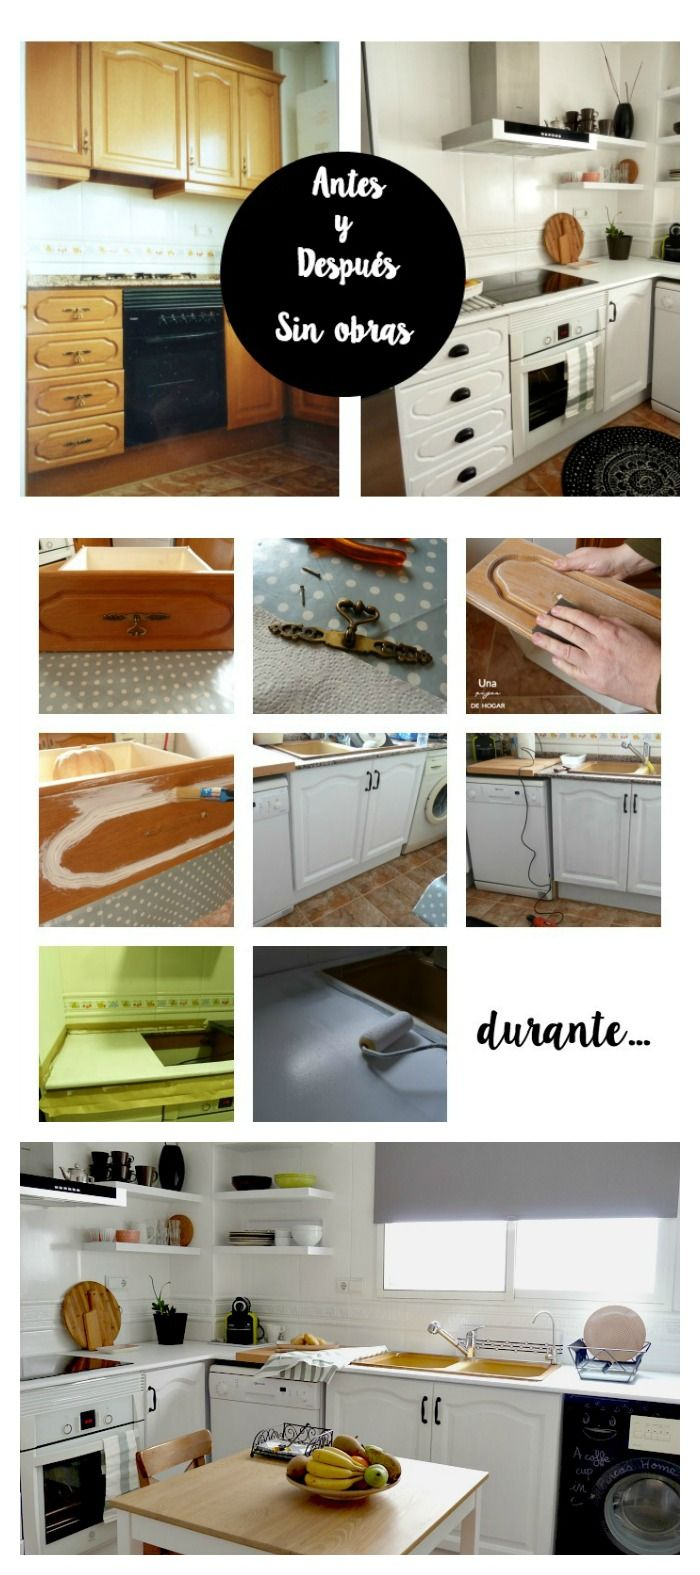 Reforma de mi cocina sin obras. Antes, durante y después. #diy #kitchen #beforeafter #kitchen